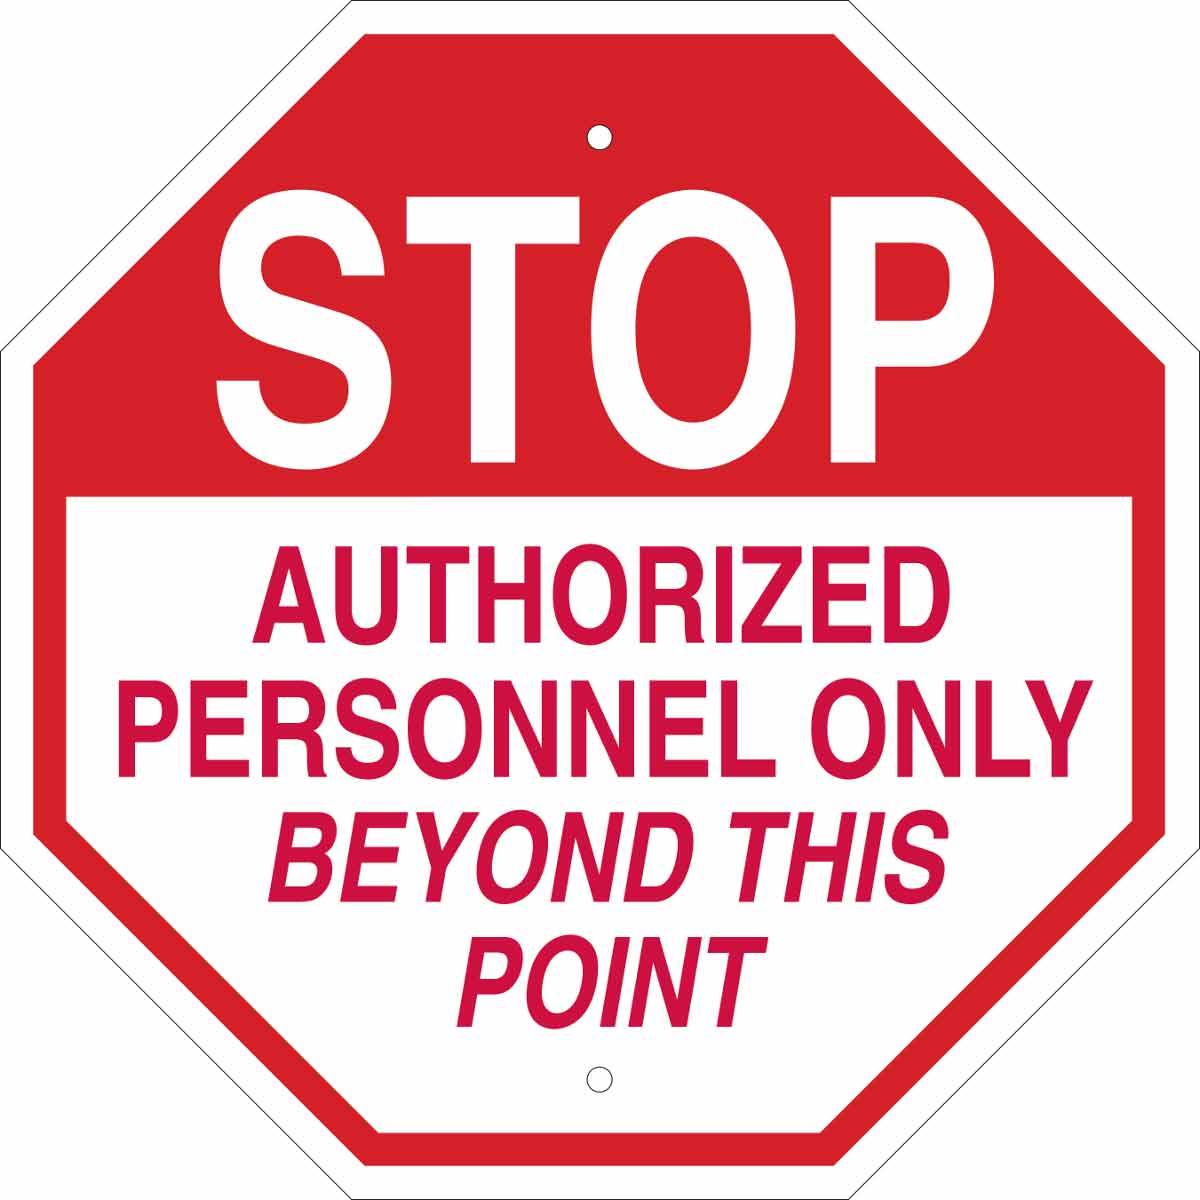 photograph regarding Authorized Personnel Only Sign Printable identify Protect against Approved Staff Basically Past This Fact Signal